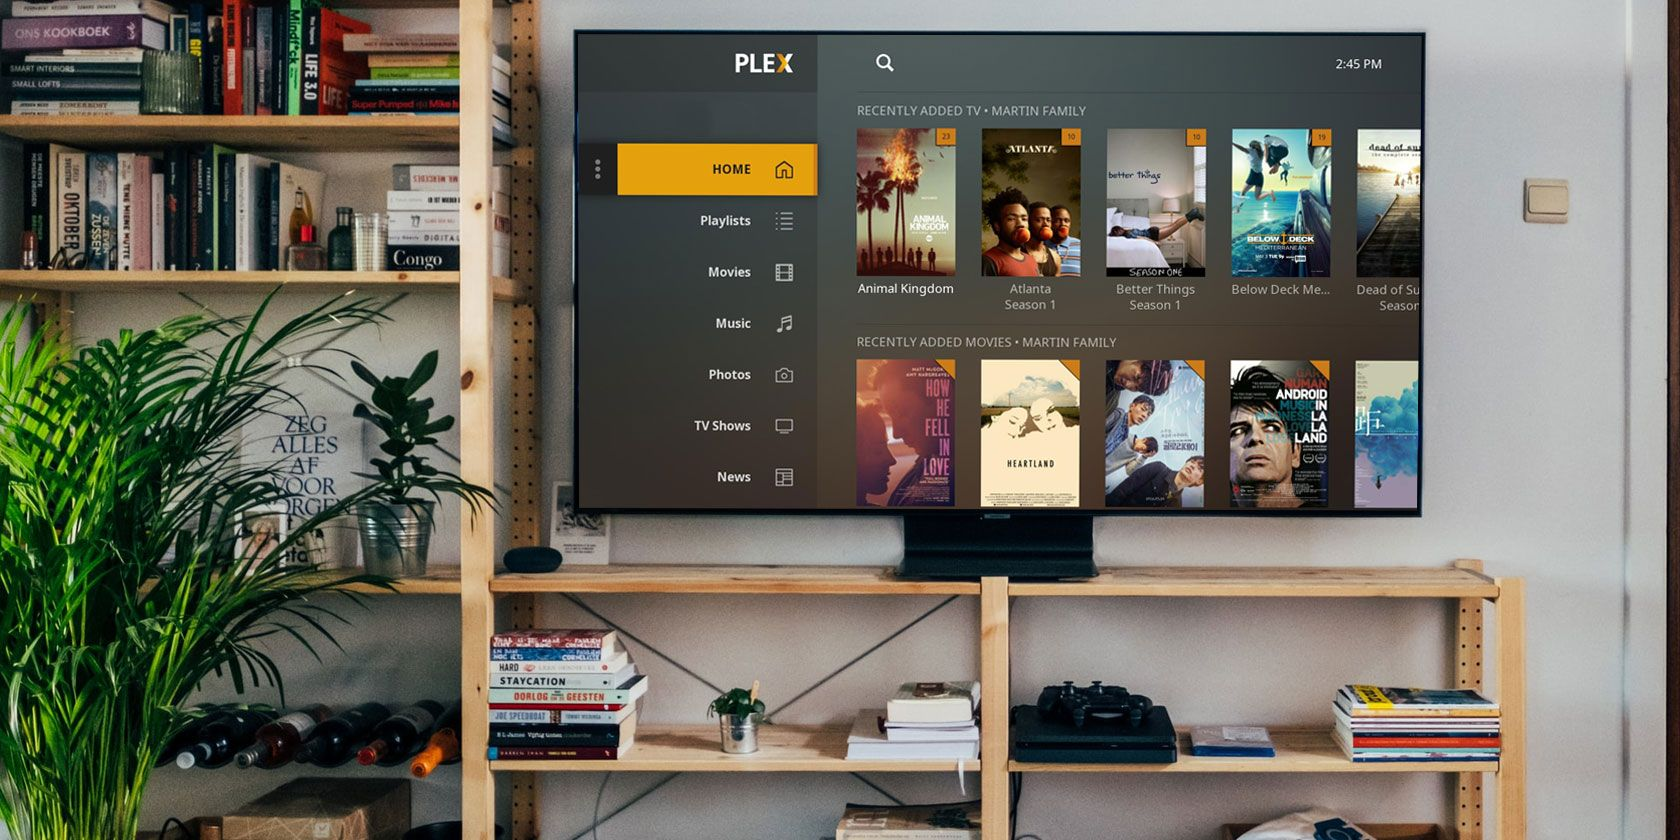 What Is Plex Video-on-Demand? Everything You Need to Know